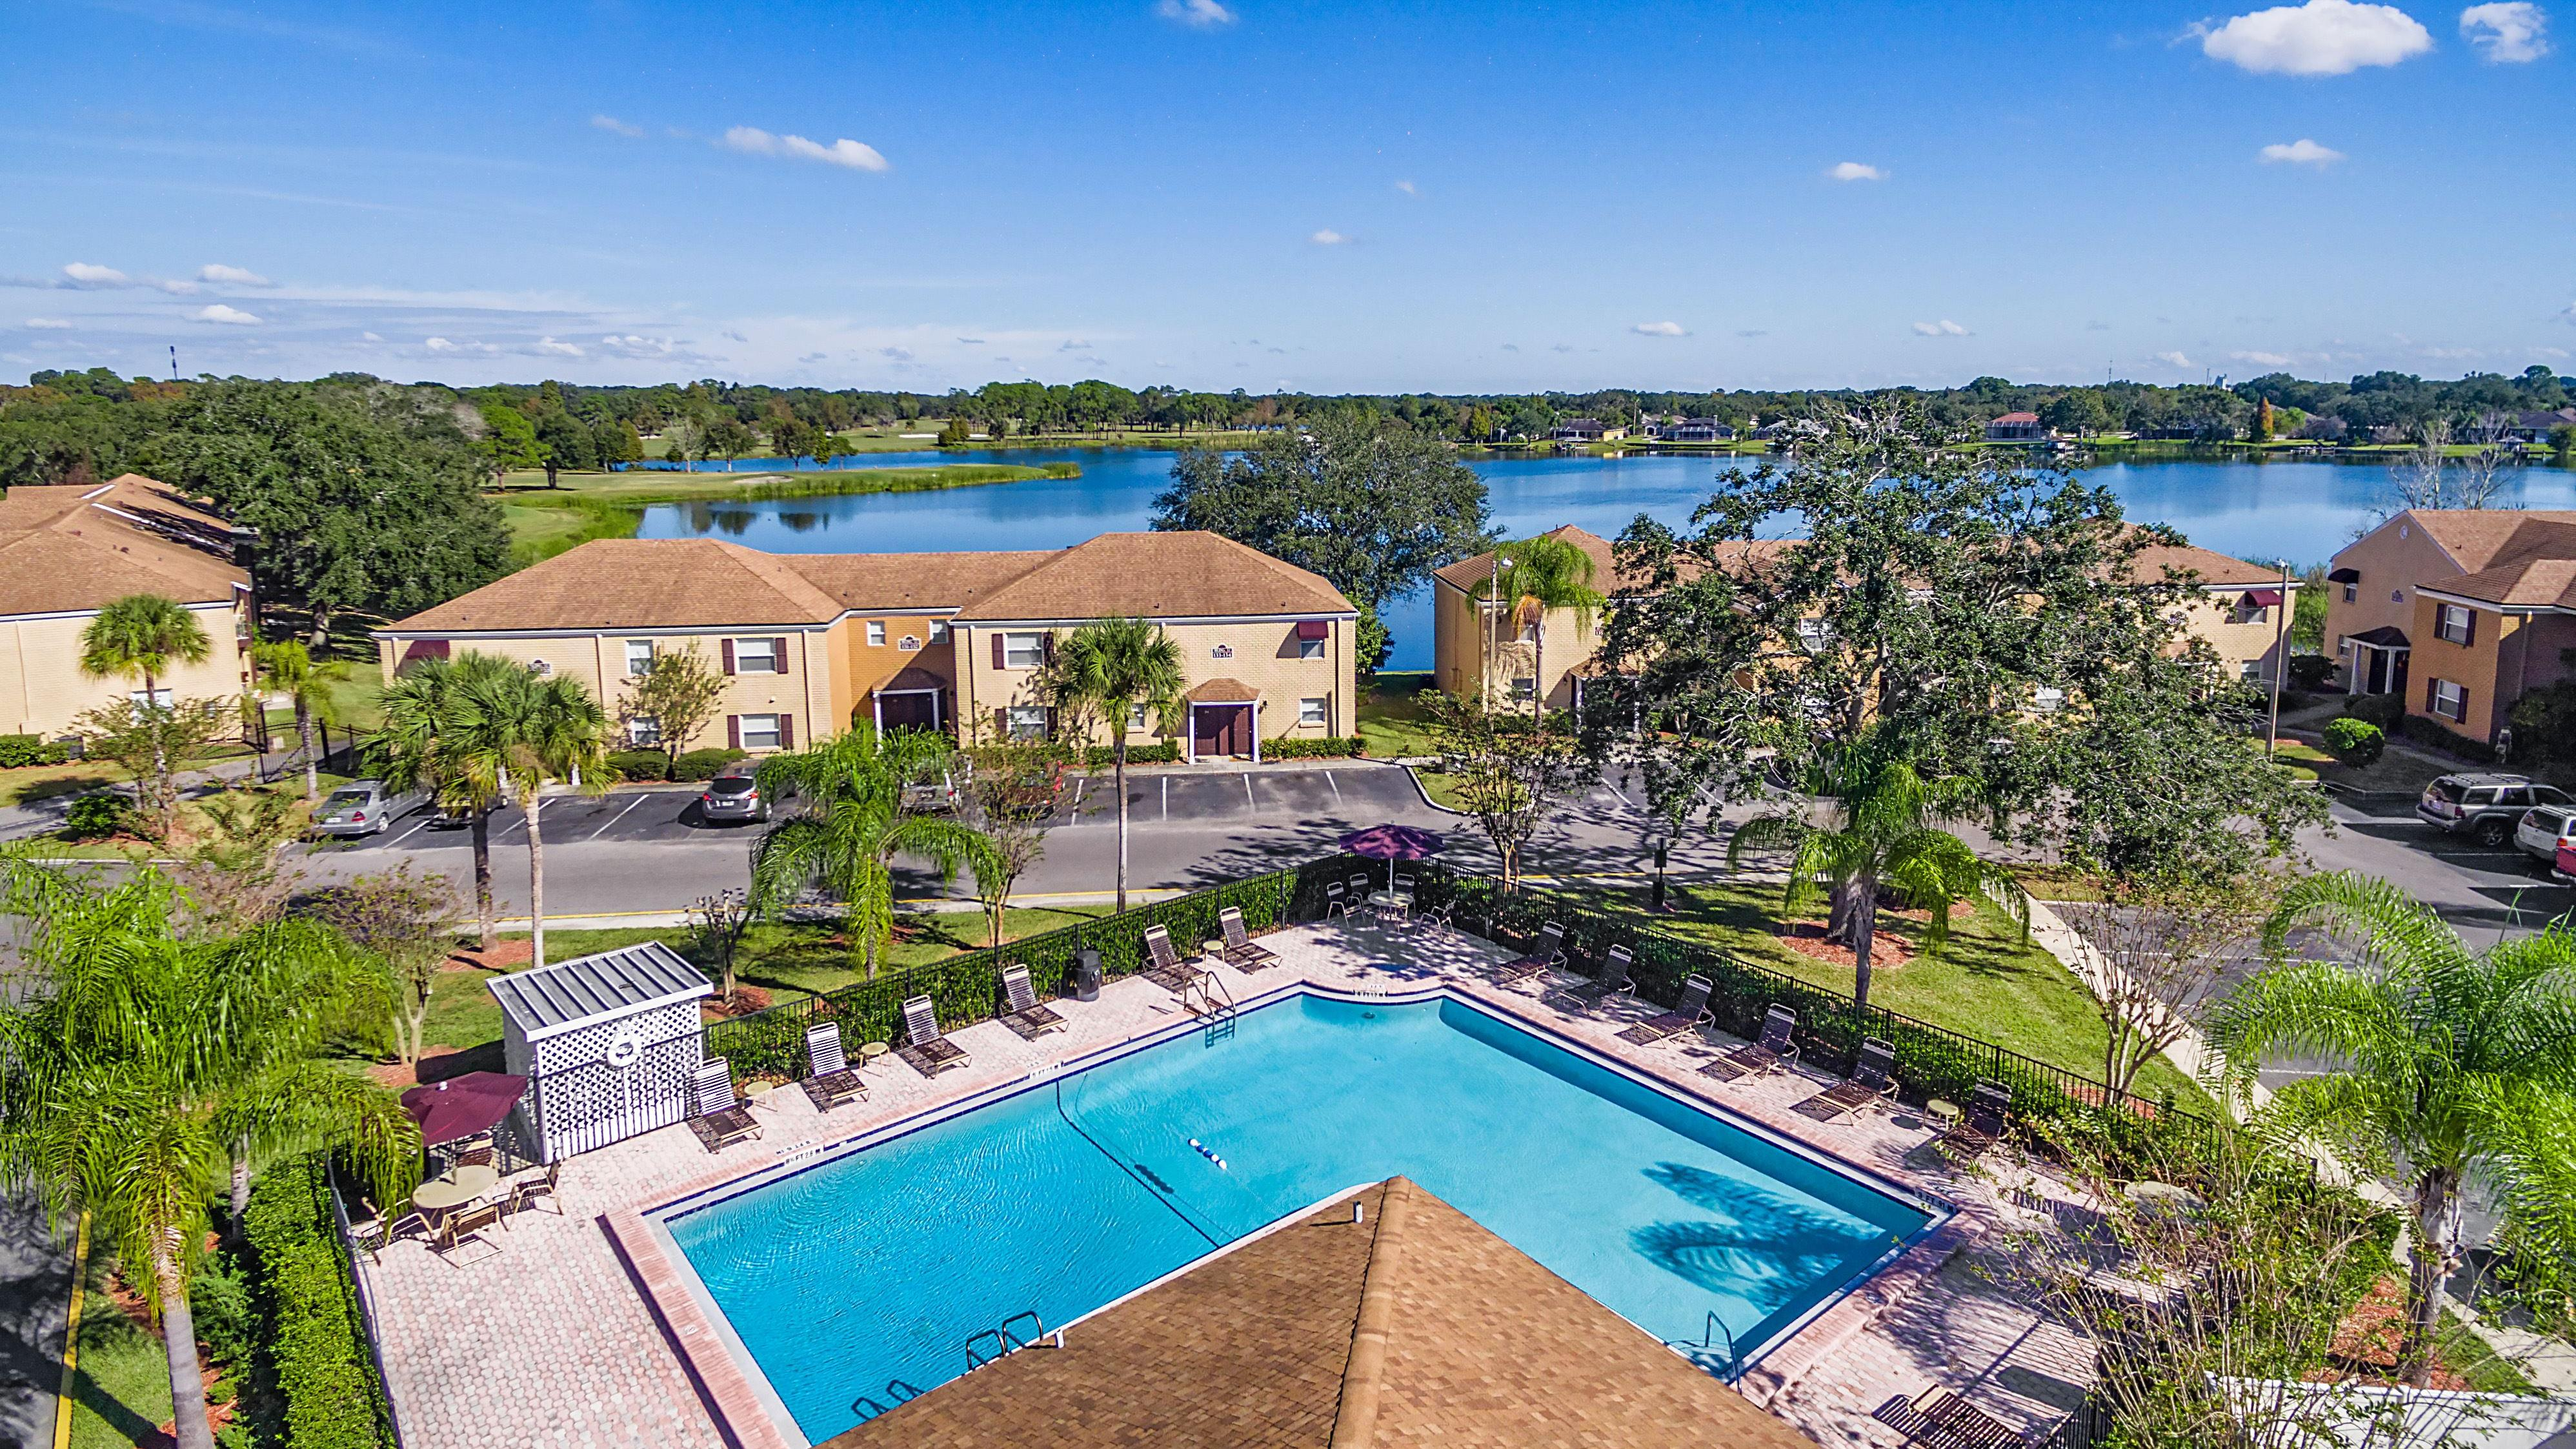 Groovy The 10 Best Places To Buy Vacation Homes In Florida In 2019 Interior Design Ideas Philsoteloinfo